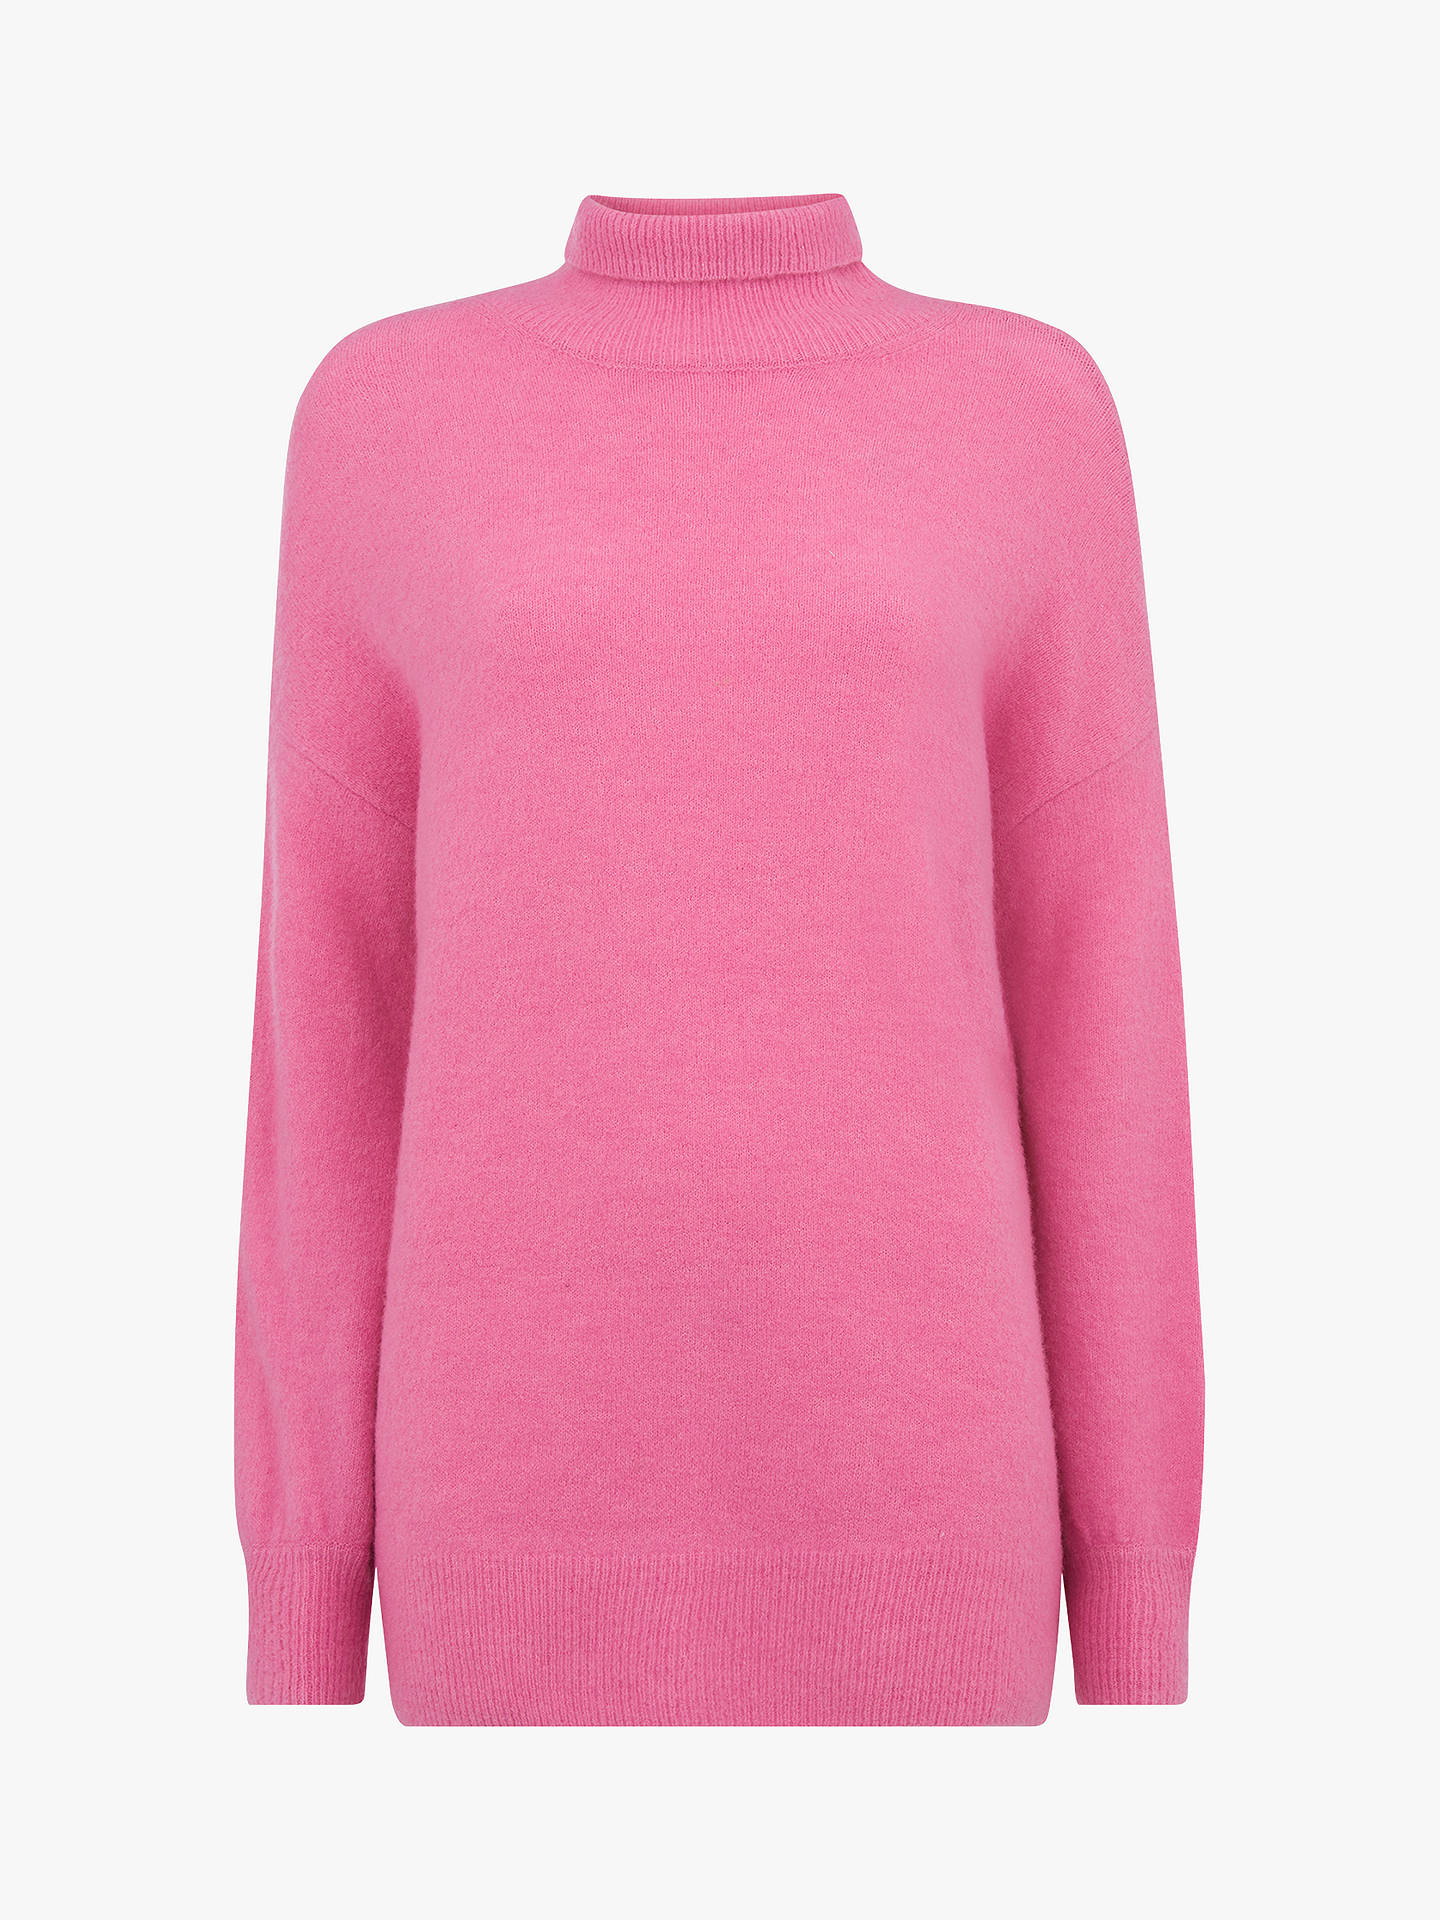 BuyWhistles Funnel Neck Oversized Jumper, Pink, M Online at johnlewis.com